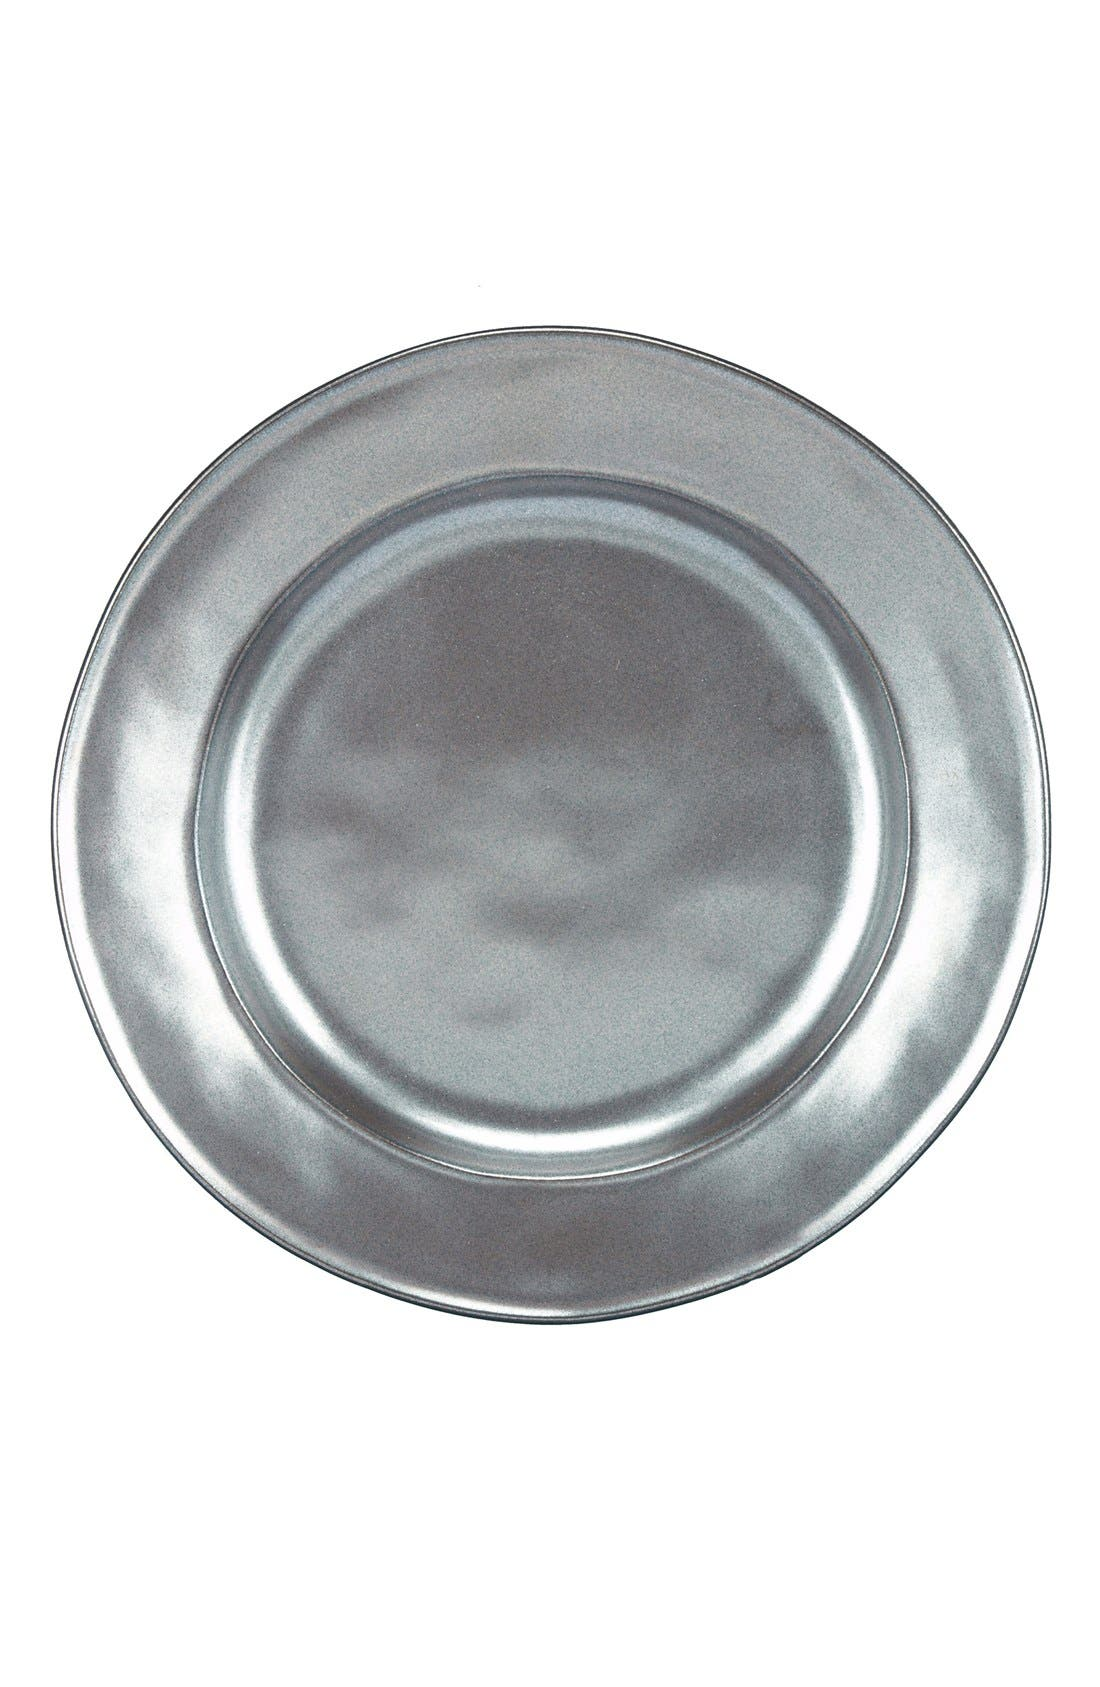 'Pewter' Ceramic Salad Plate,                             Main thumbnail 1, color,                             Pewter